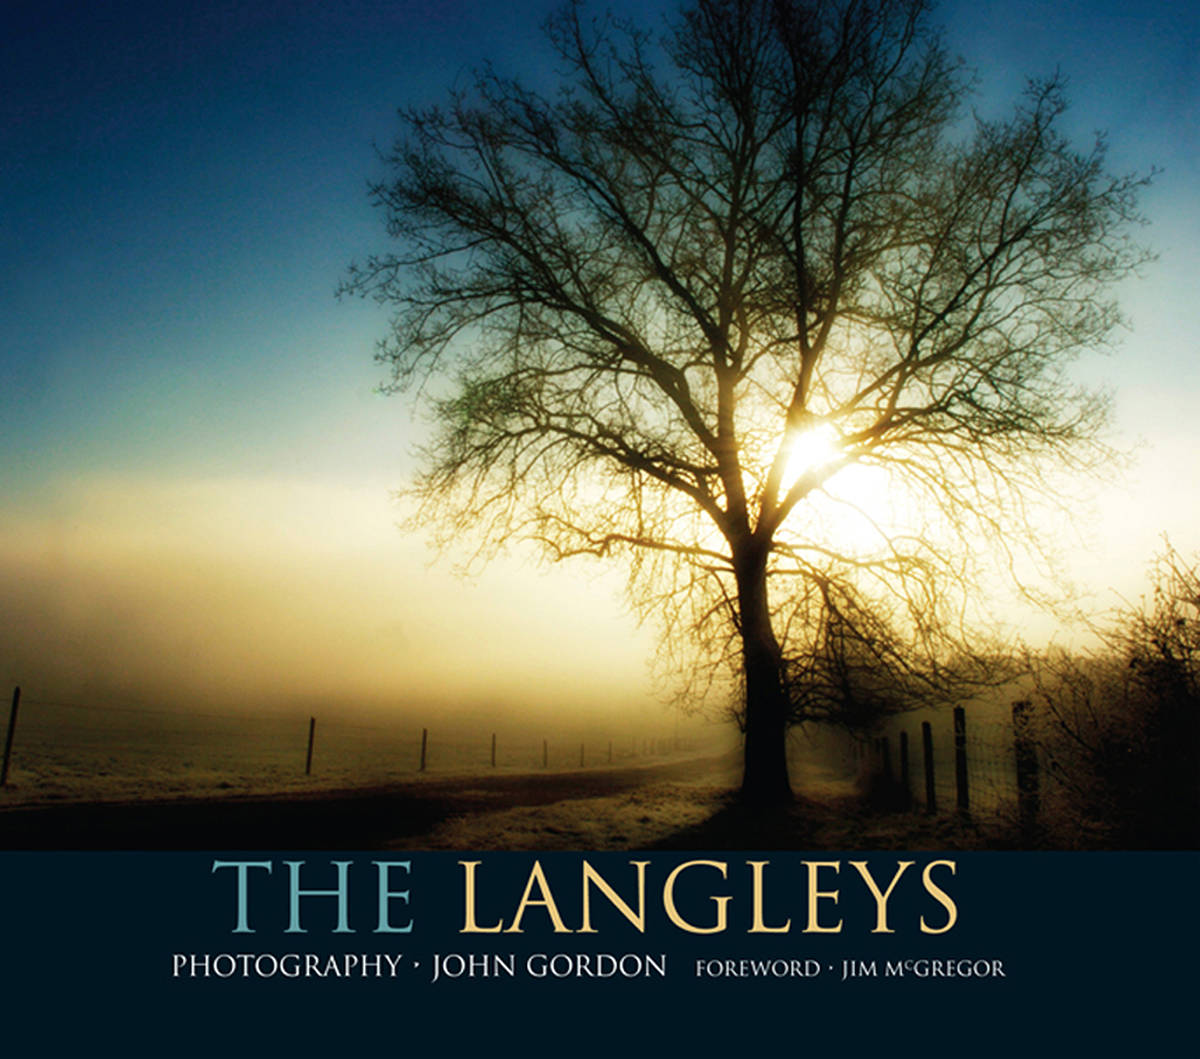 A book capturing the beauty of Langley in photographs is flying off the shelves